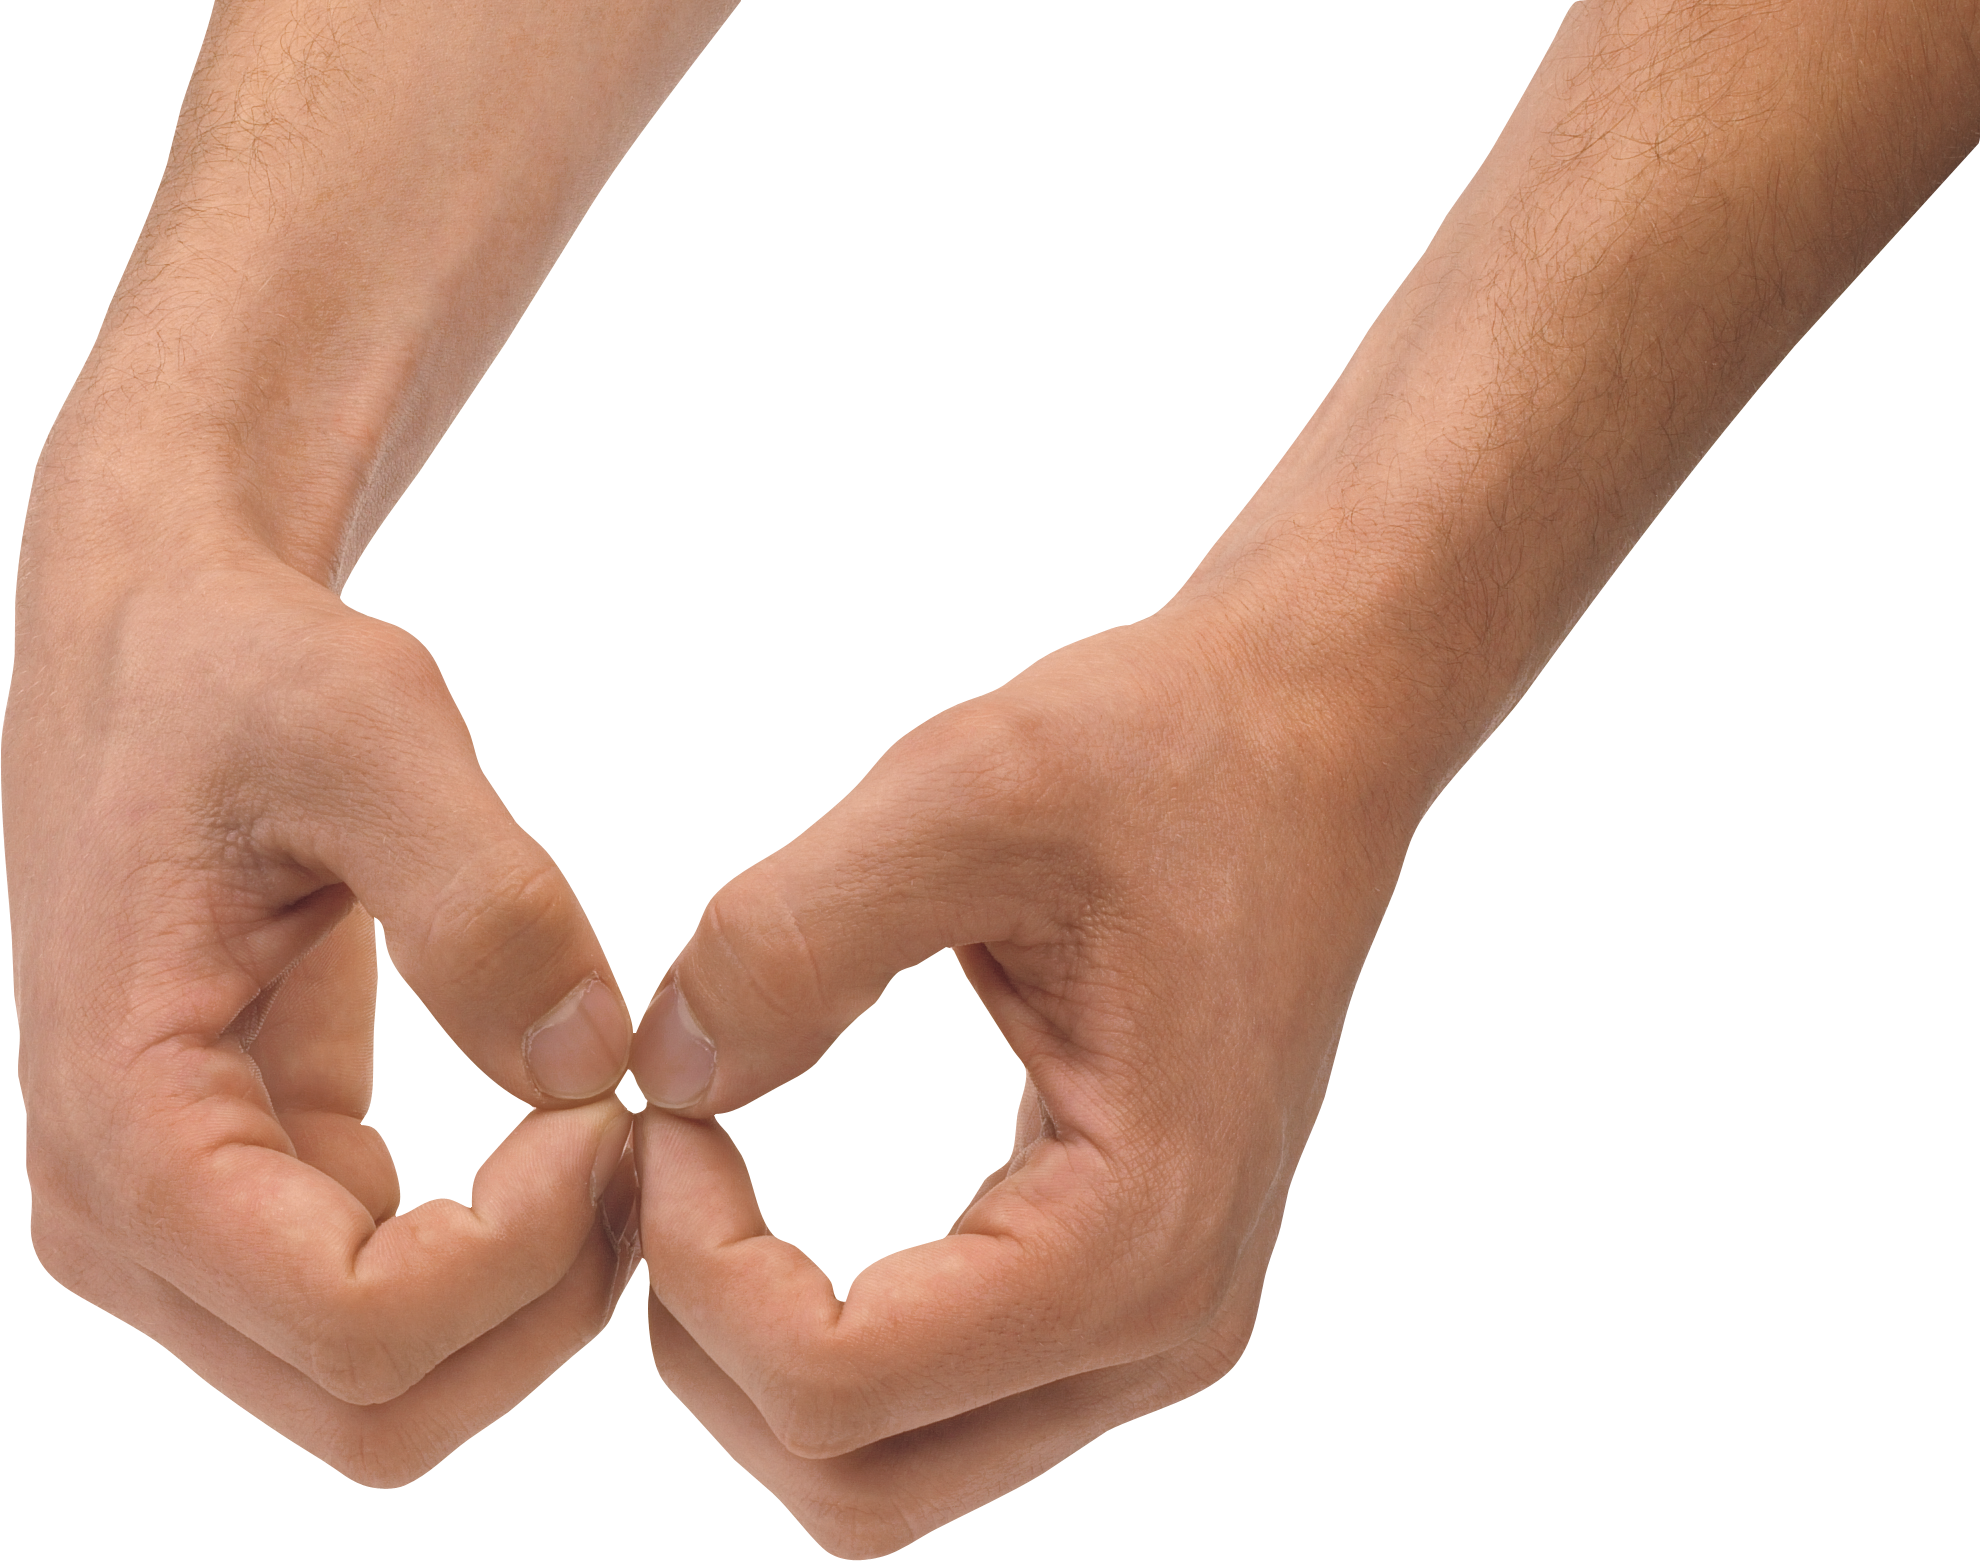 Hands Png Free Images Pictures Download Hand The pnghost database contains over 22 million free to download transparent png images. hands png free images pictures